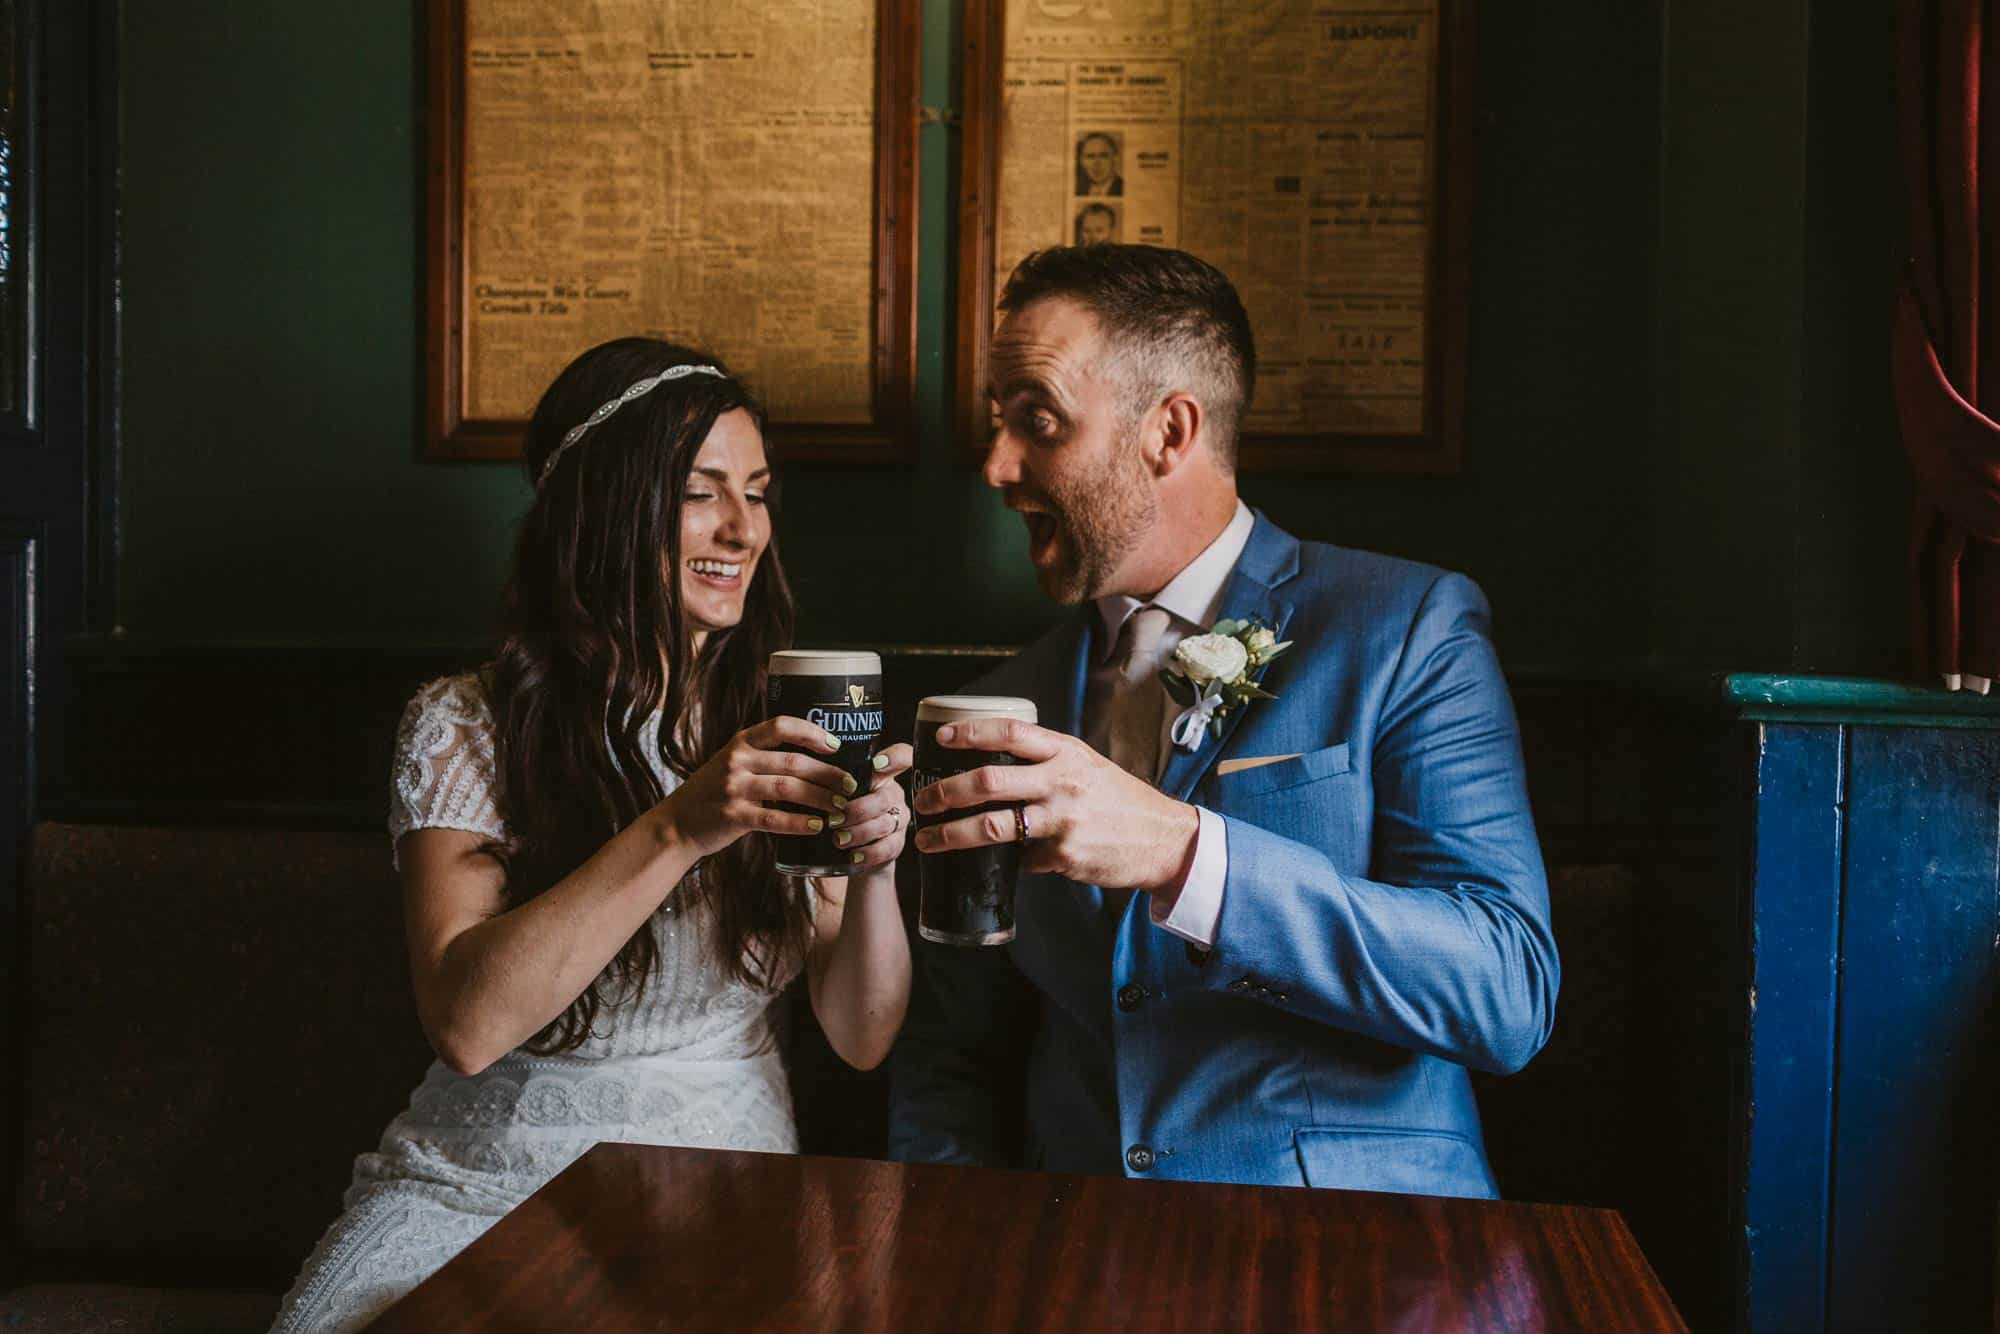 Elopement videographer Ireland, more guinness and laughing